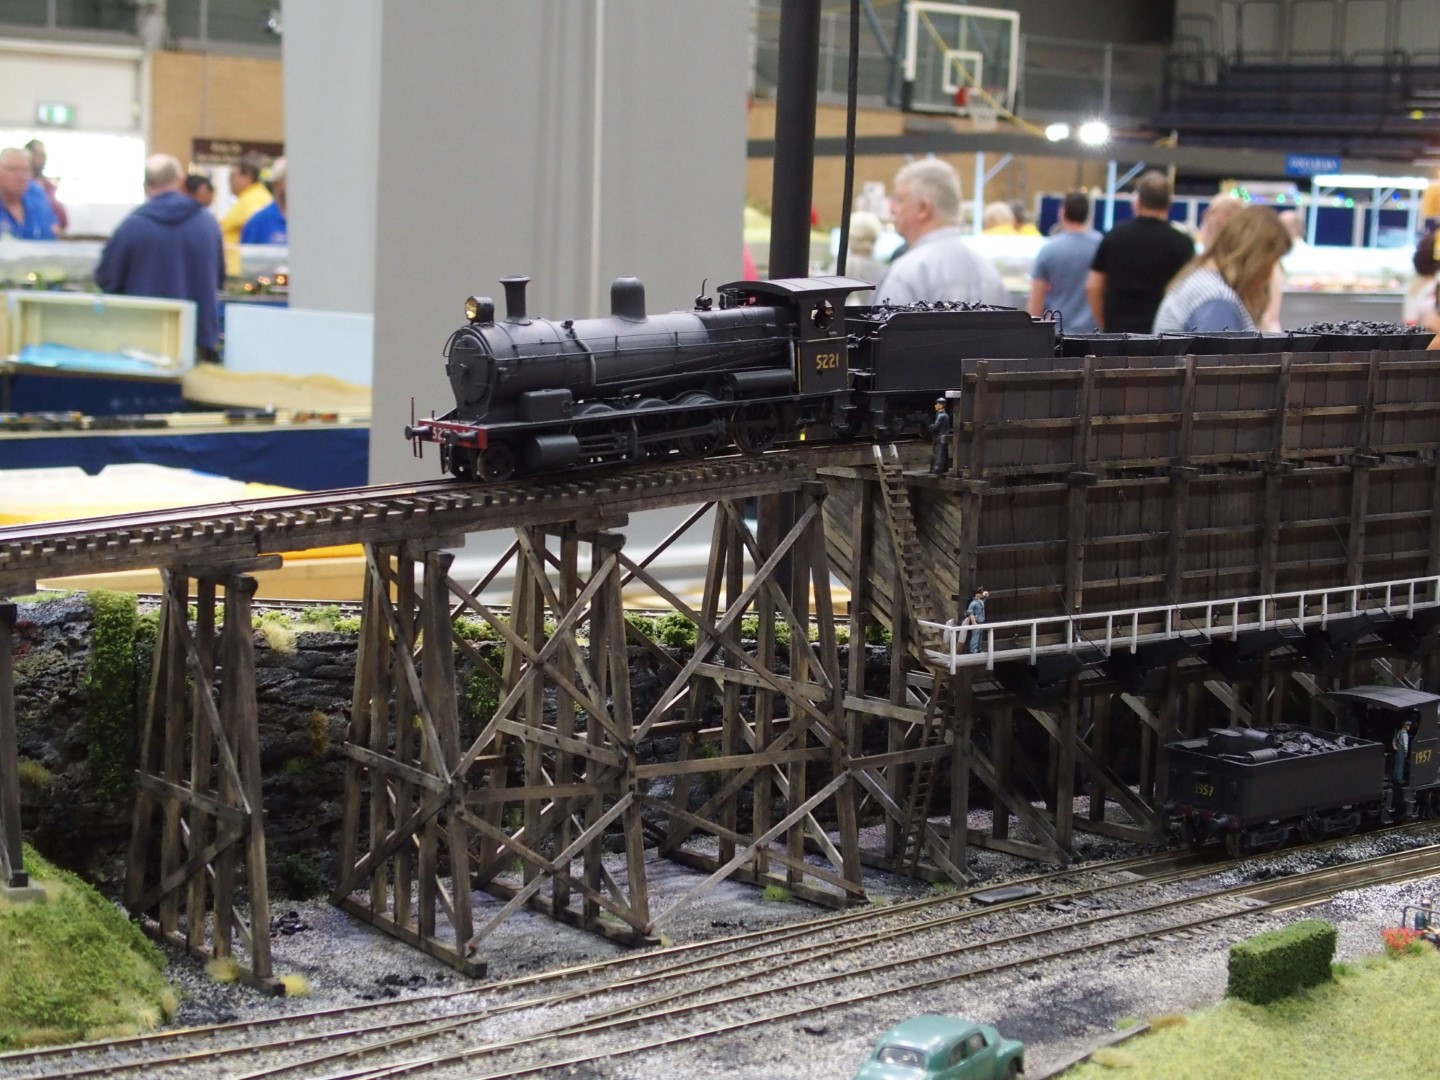 sydney model train show 039 (Large).jpeg